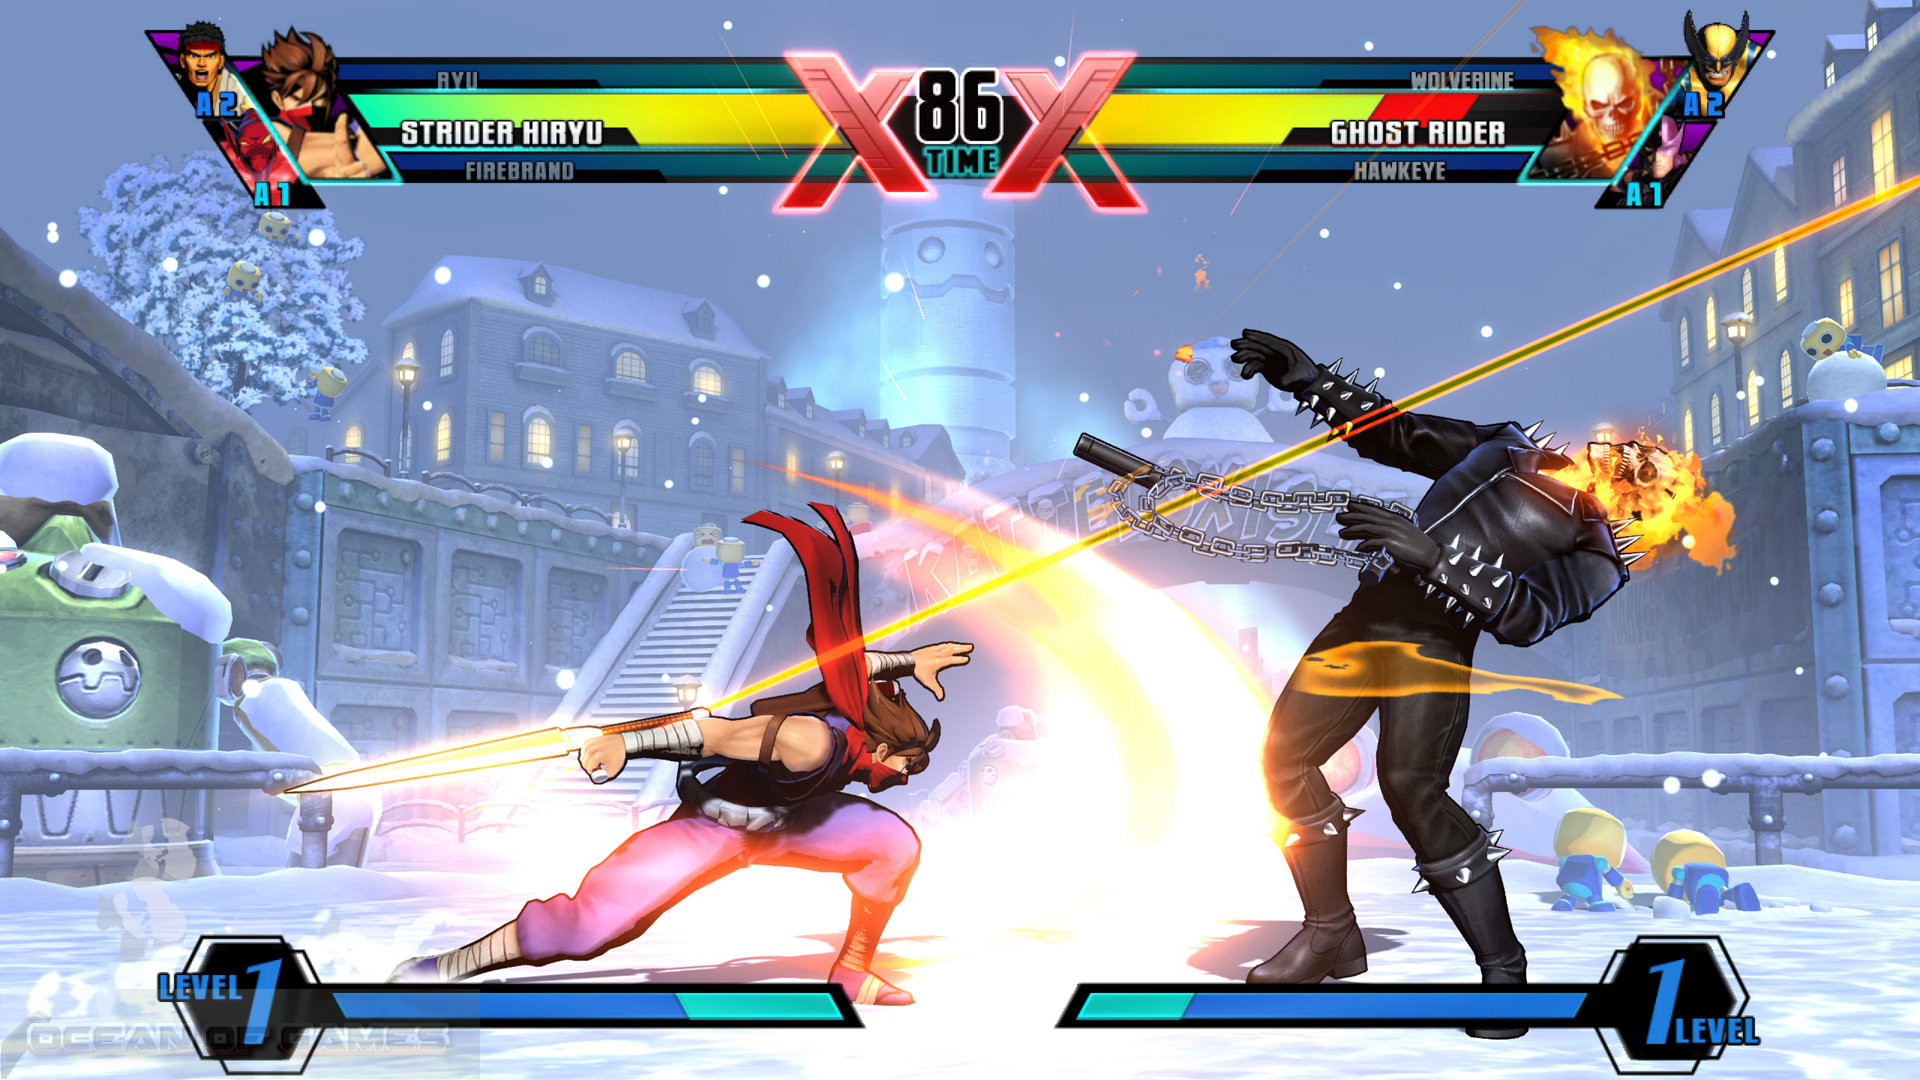 Ultimate Marvel vs Capcom 3 Download For Free